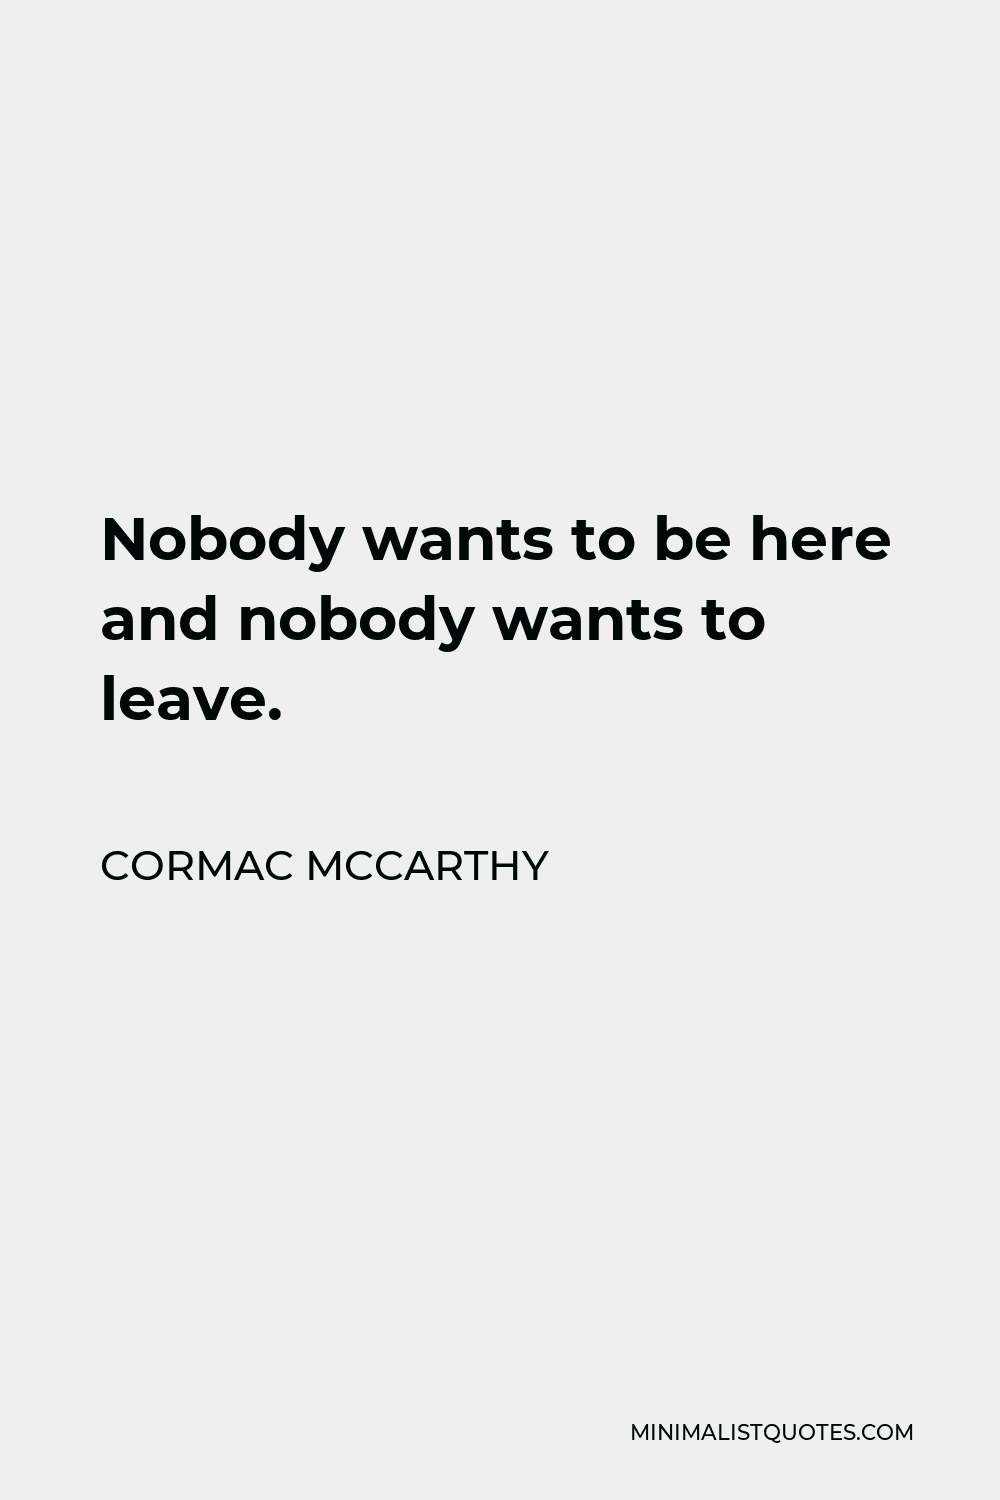 Cormac McCarthy Quote - Nobody wants to be here and nobody wants to leave.